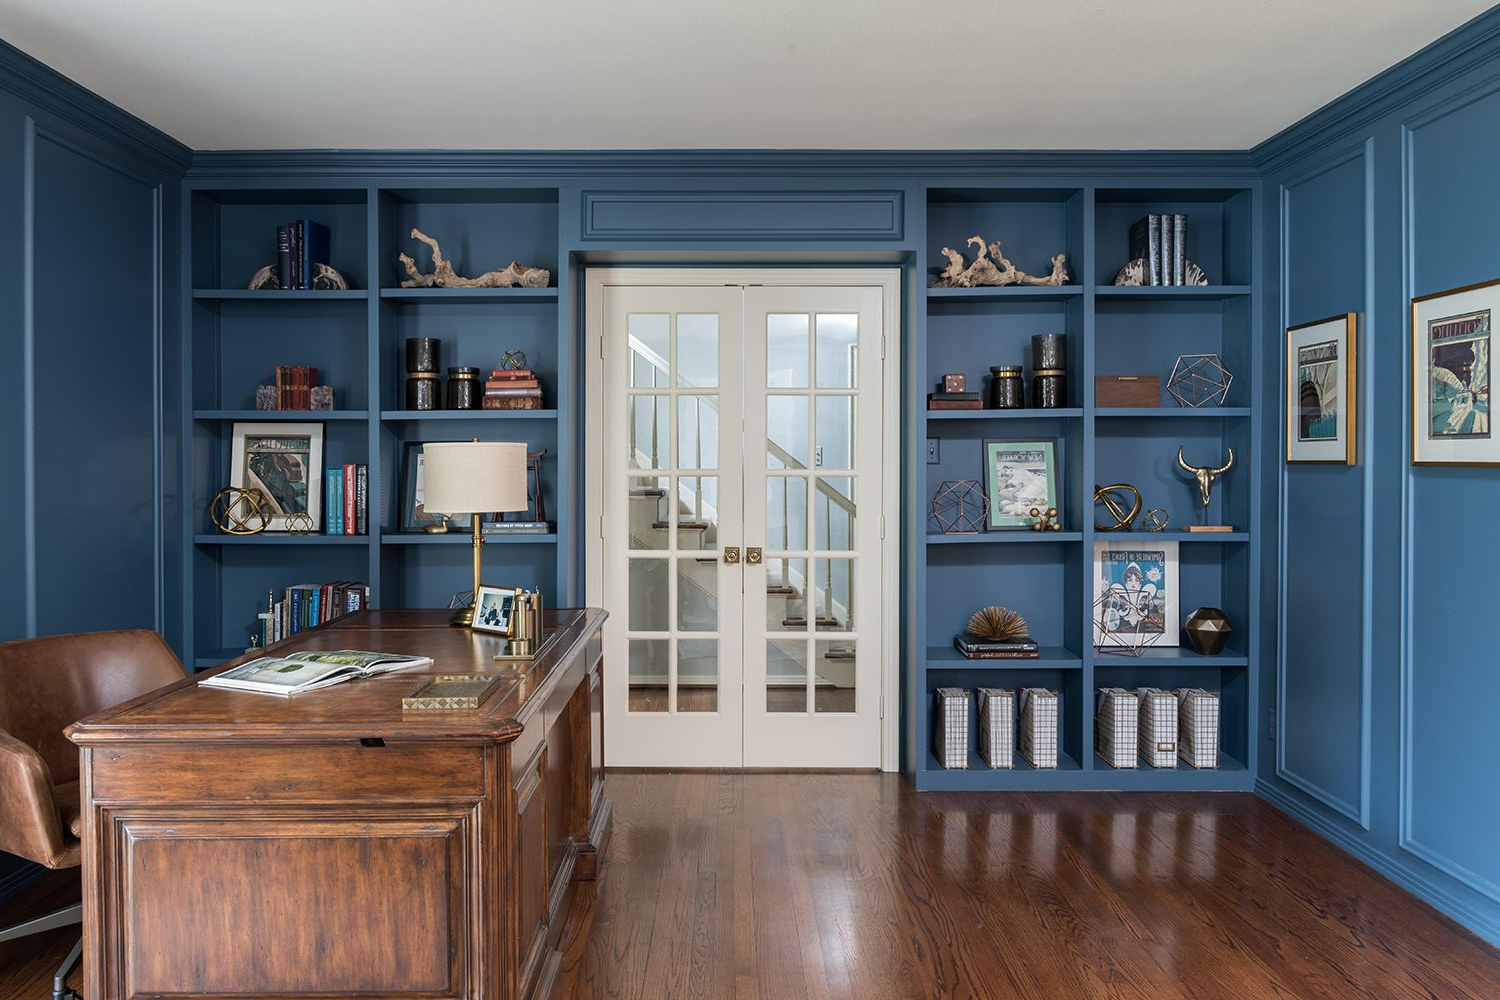 25 Stylish Built In Bookshelves – Floor To Ceiling Shelving Inside Kara 4 Door Accent Cabinets (View 1 of 20)